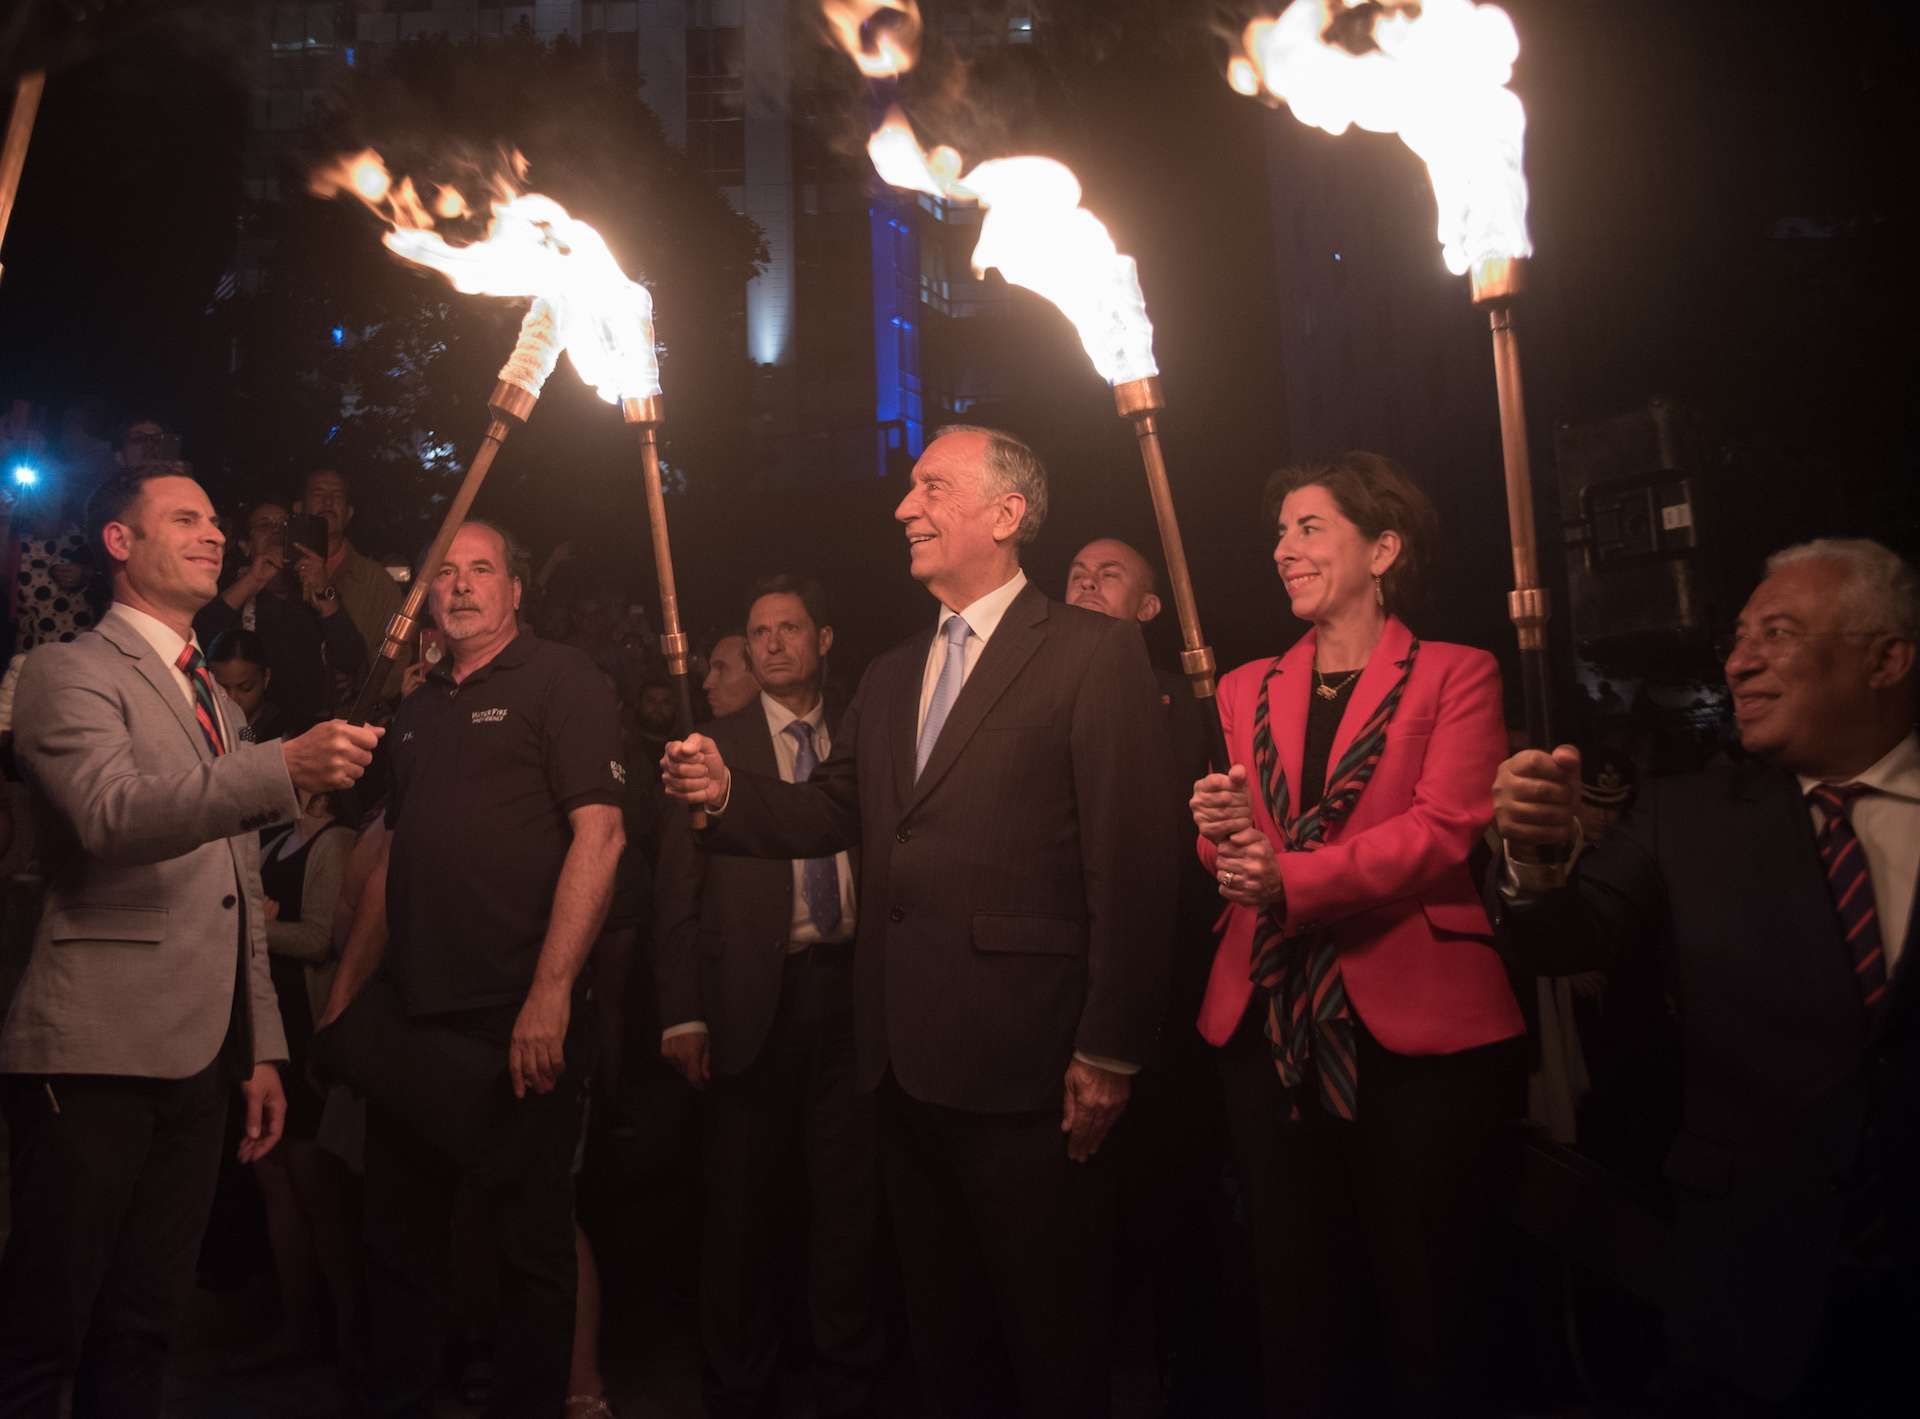 portuguese-president-marcelo-rebelo-de-sousa-lights-the-torch-of-the-first-gentleman-of-rhode-island